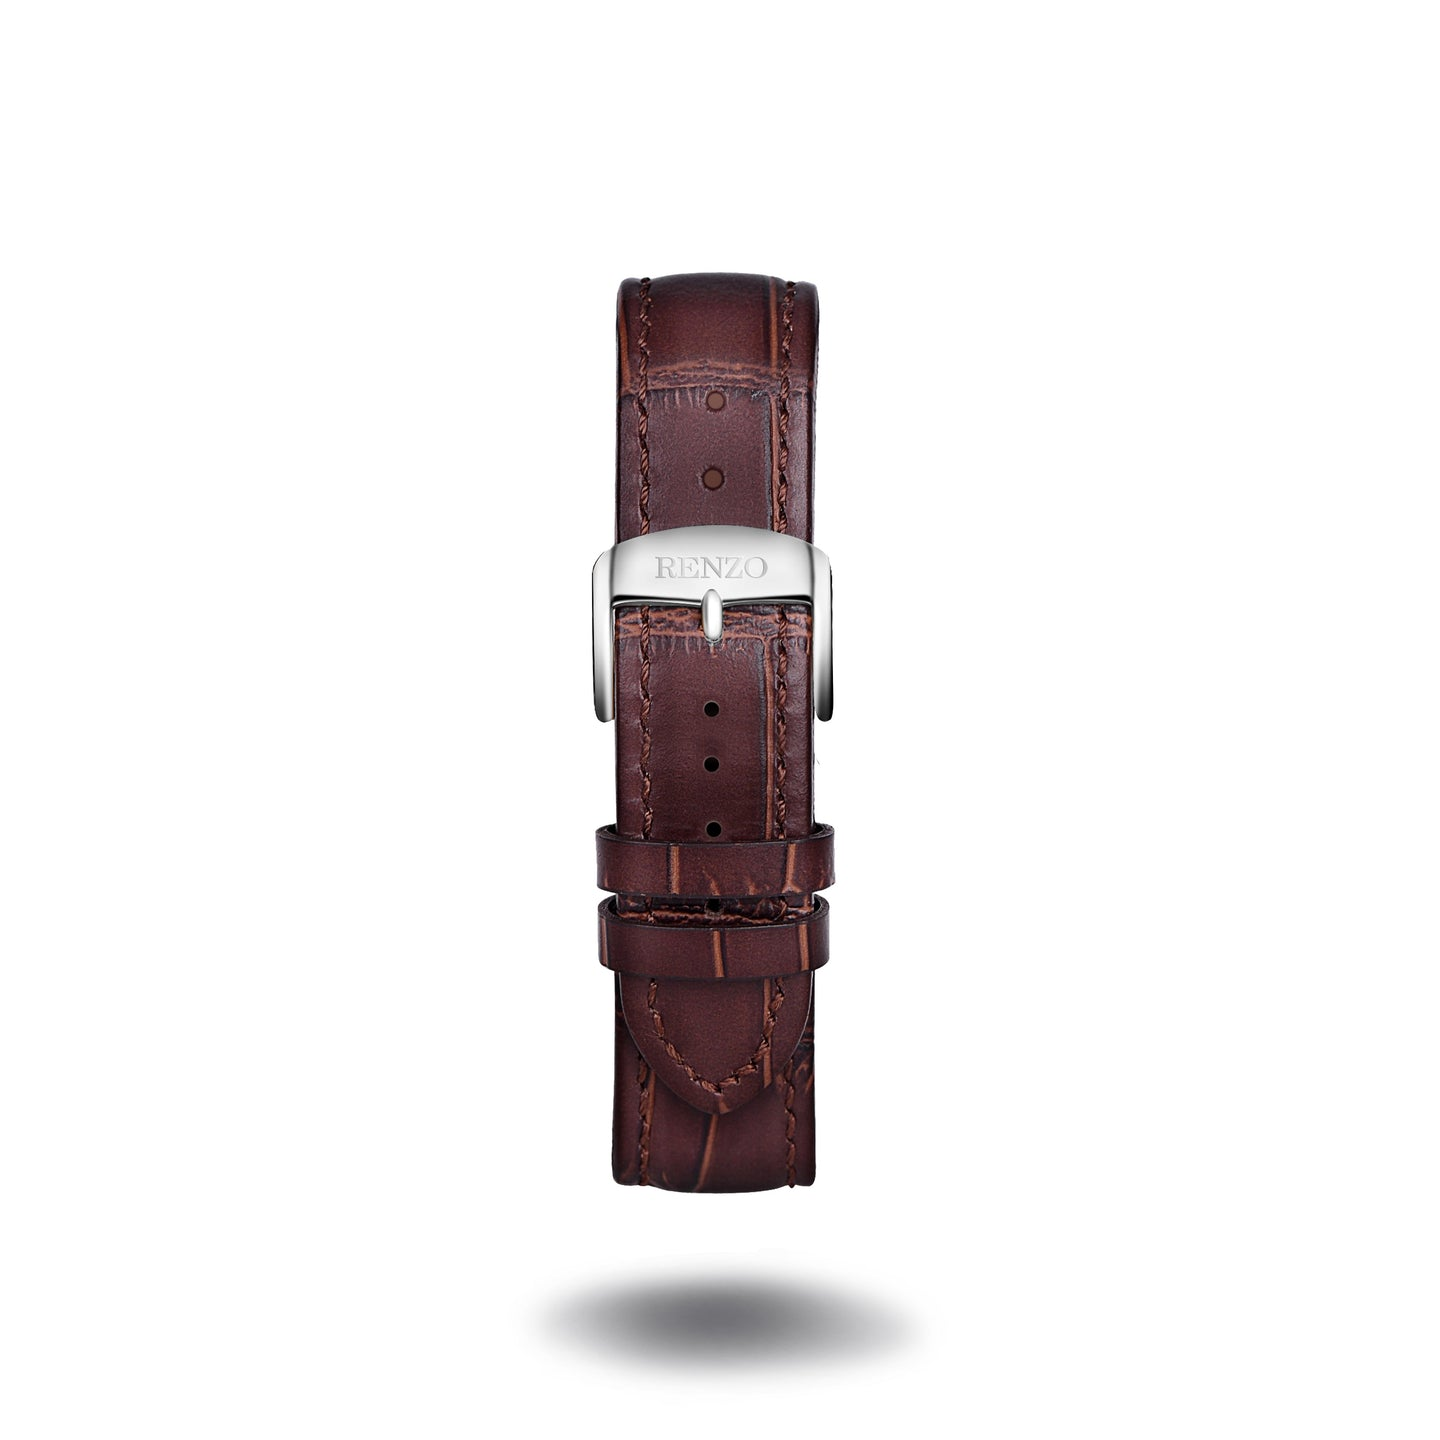 Strap - Croco Brown Silver Strap